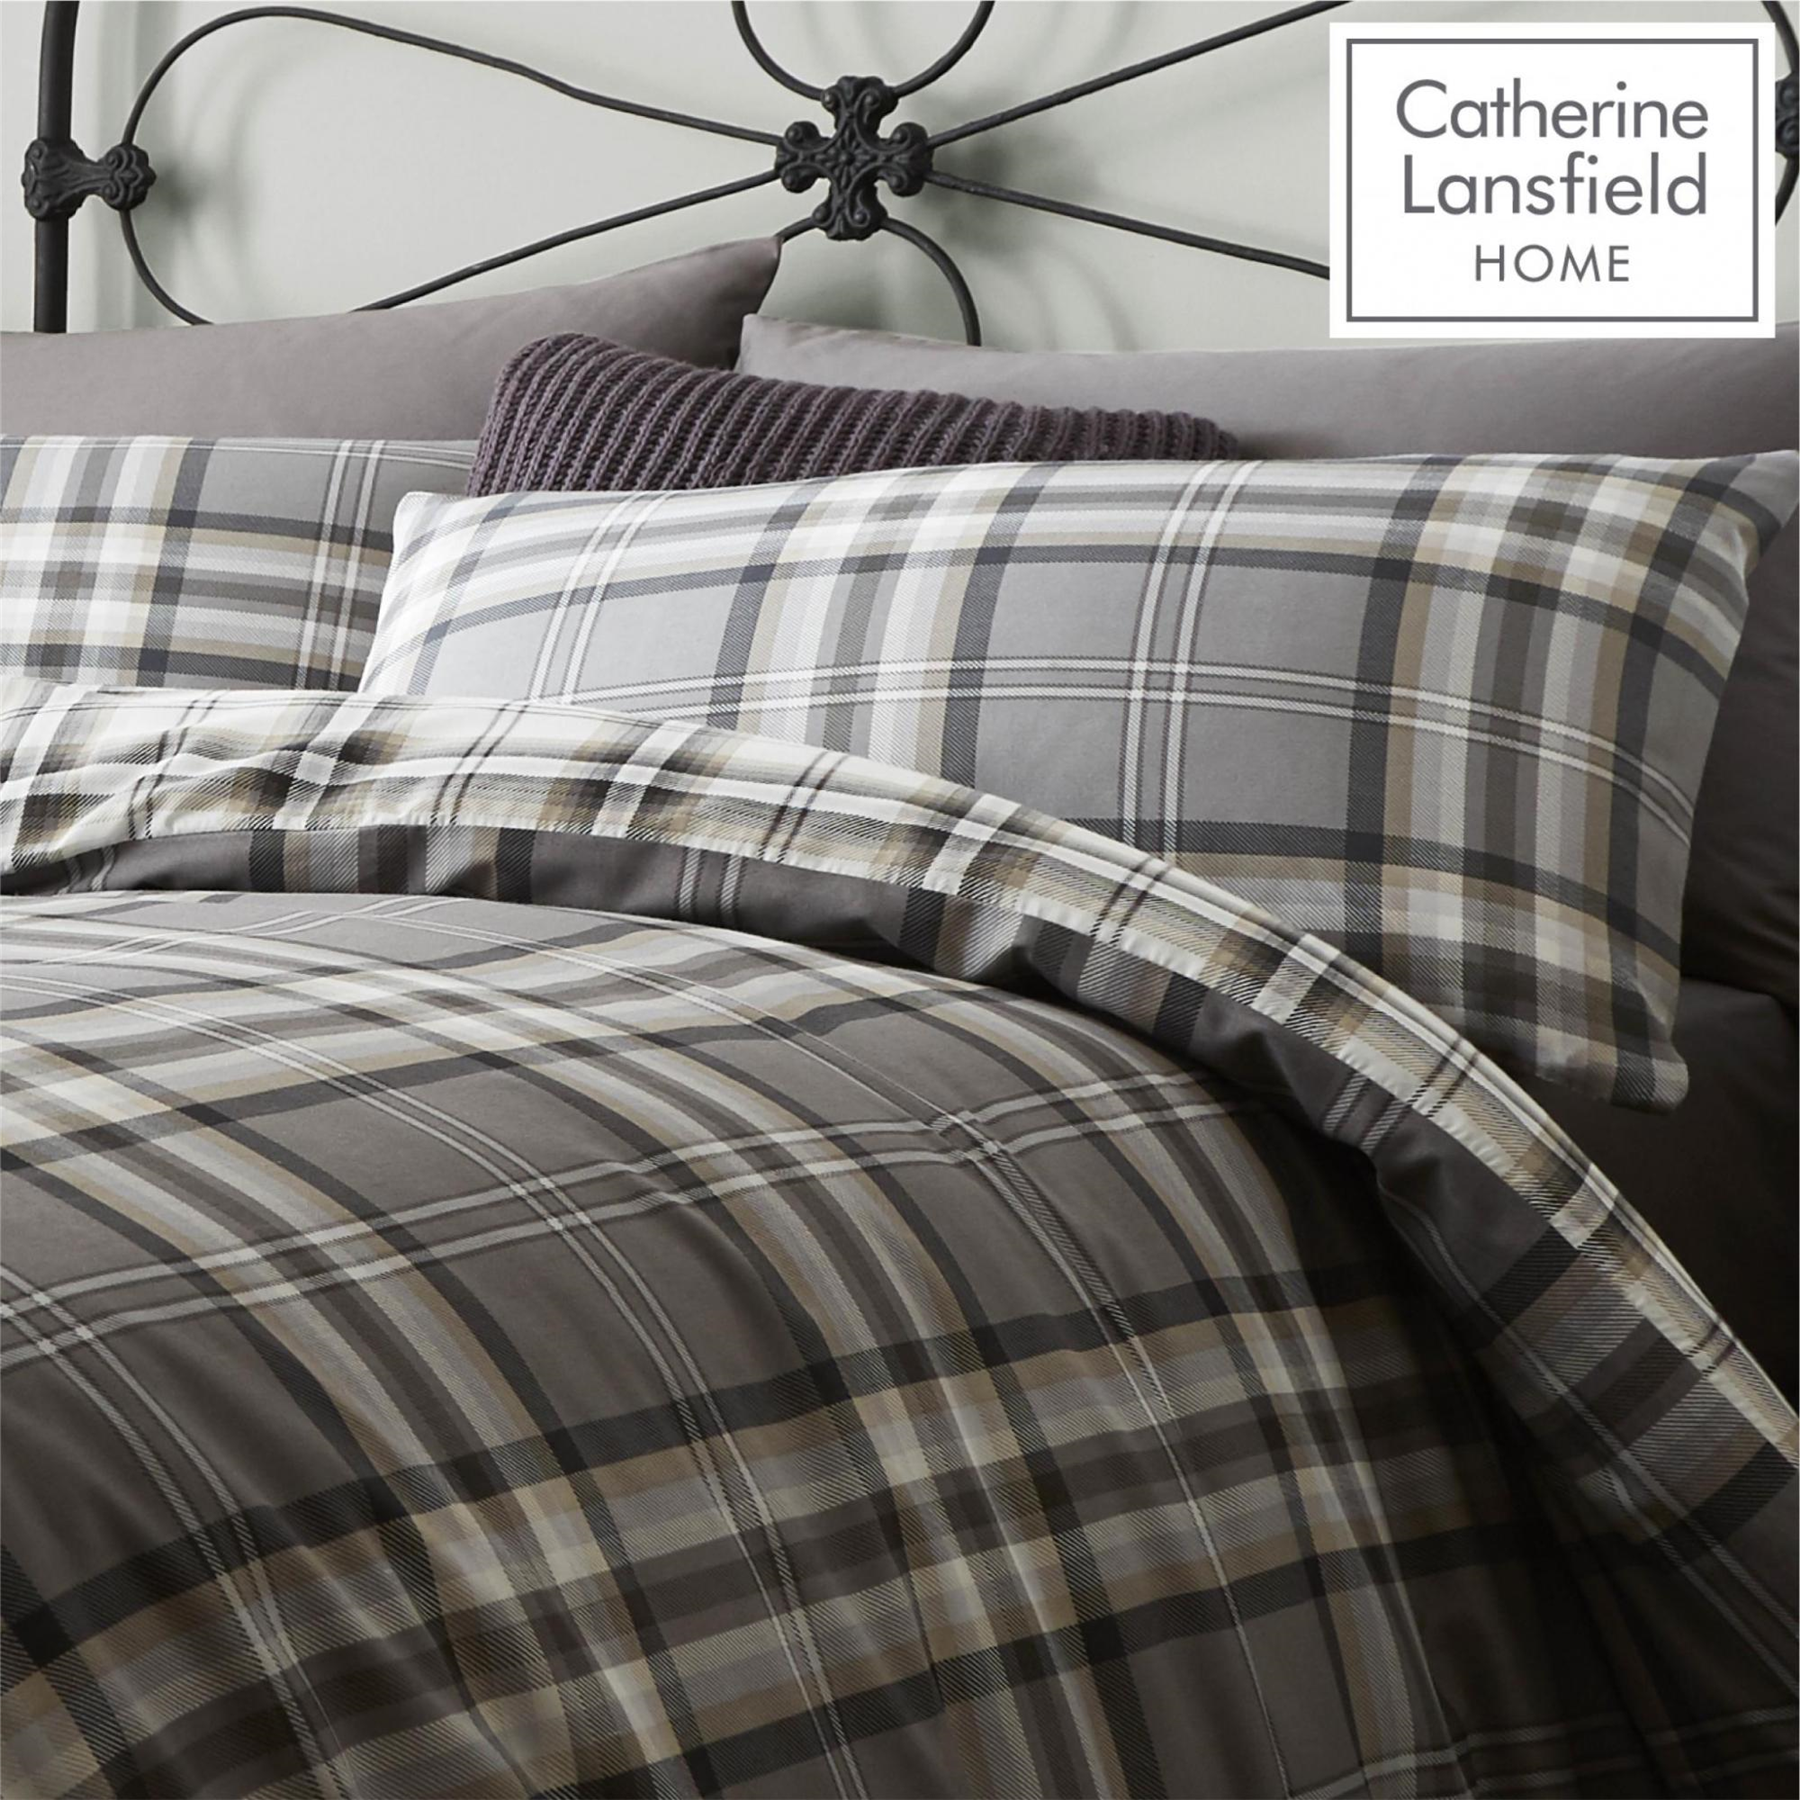 Catherine-Lansfield-Duvet-Set-Reversible-Check-Bedding-Charcoal-Pillows-Curtain thumbnail 7